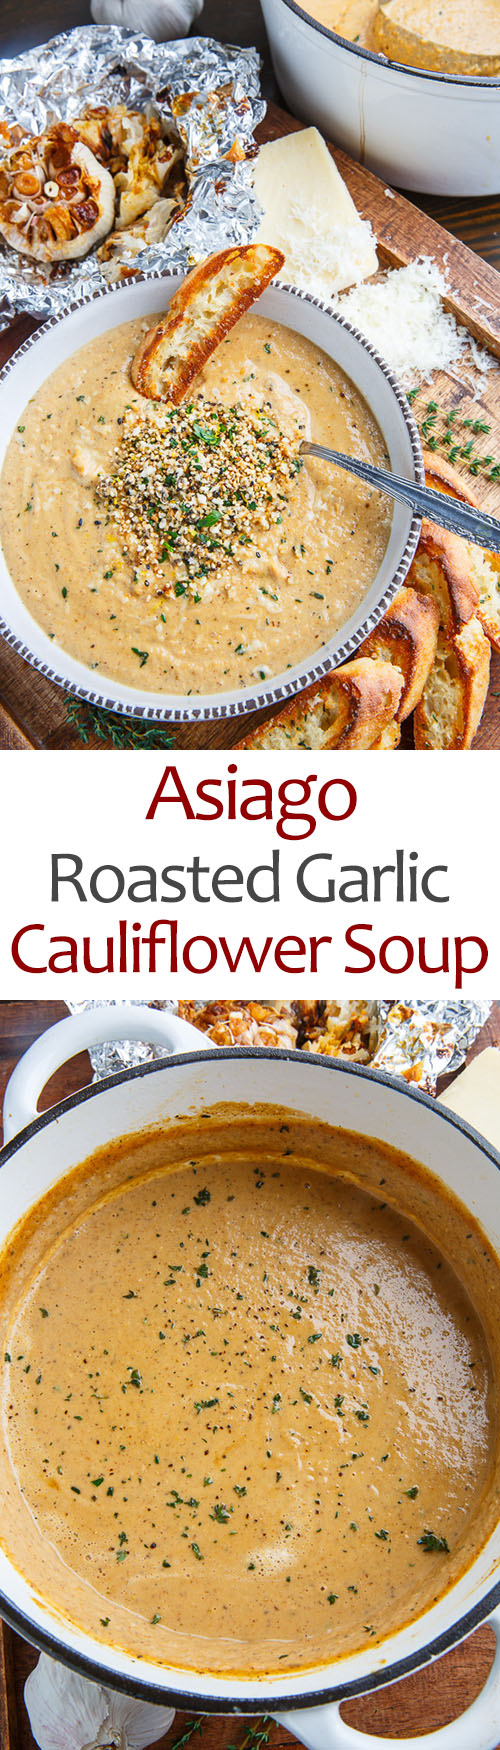 Asiago Roasted Garlic Cauliflower Soup on Closet Cooking